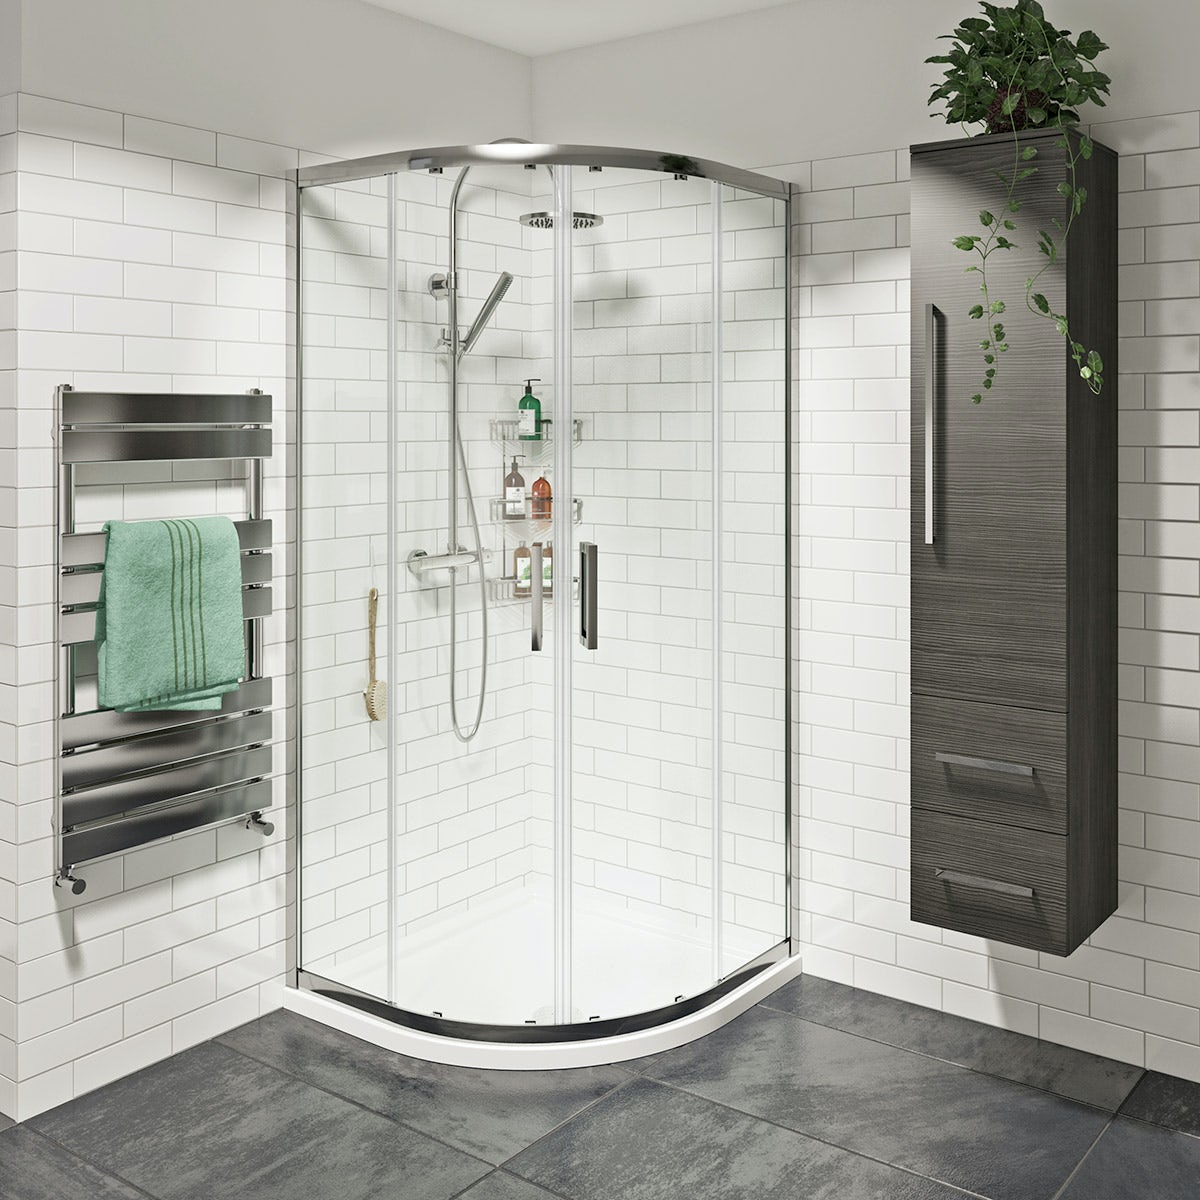 Mode Tate 8mm easy clean sliding quadrant shower enclosure